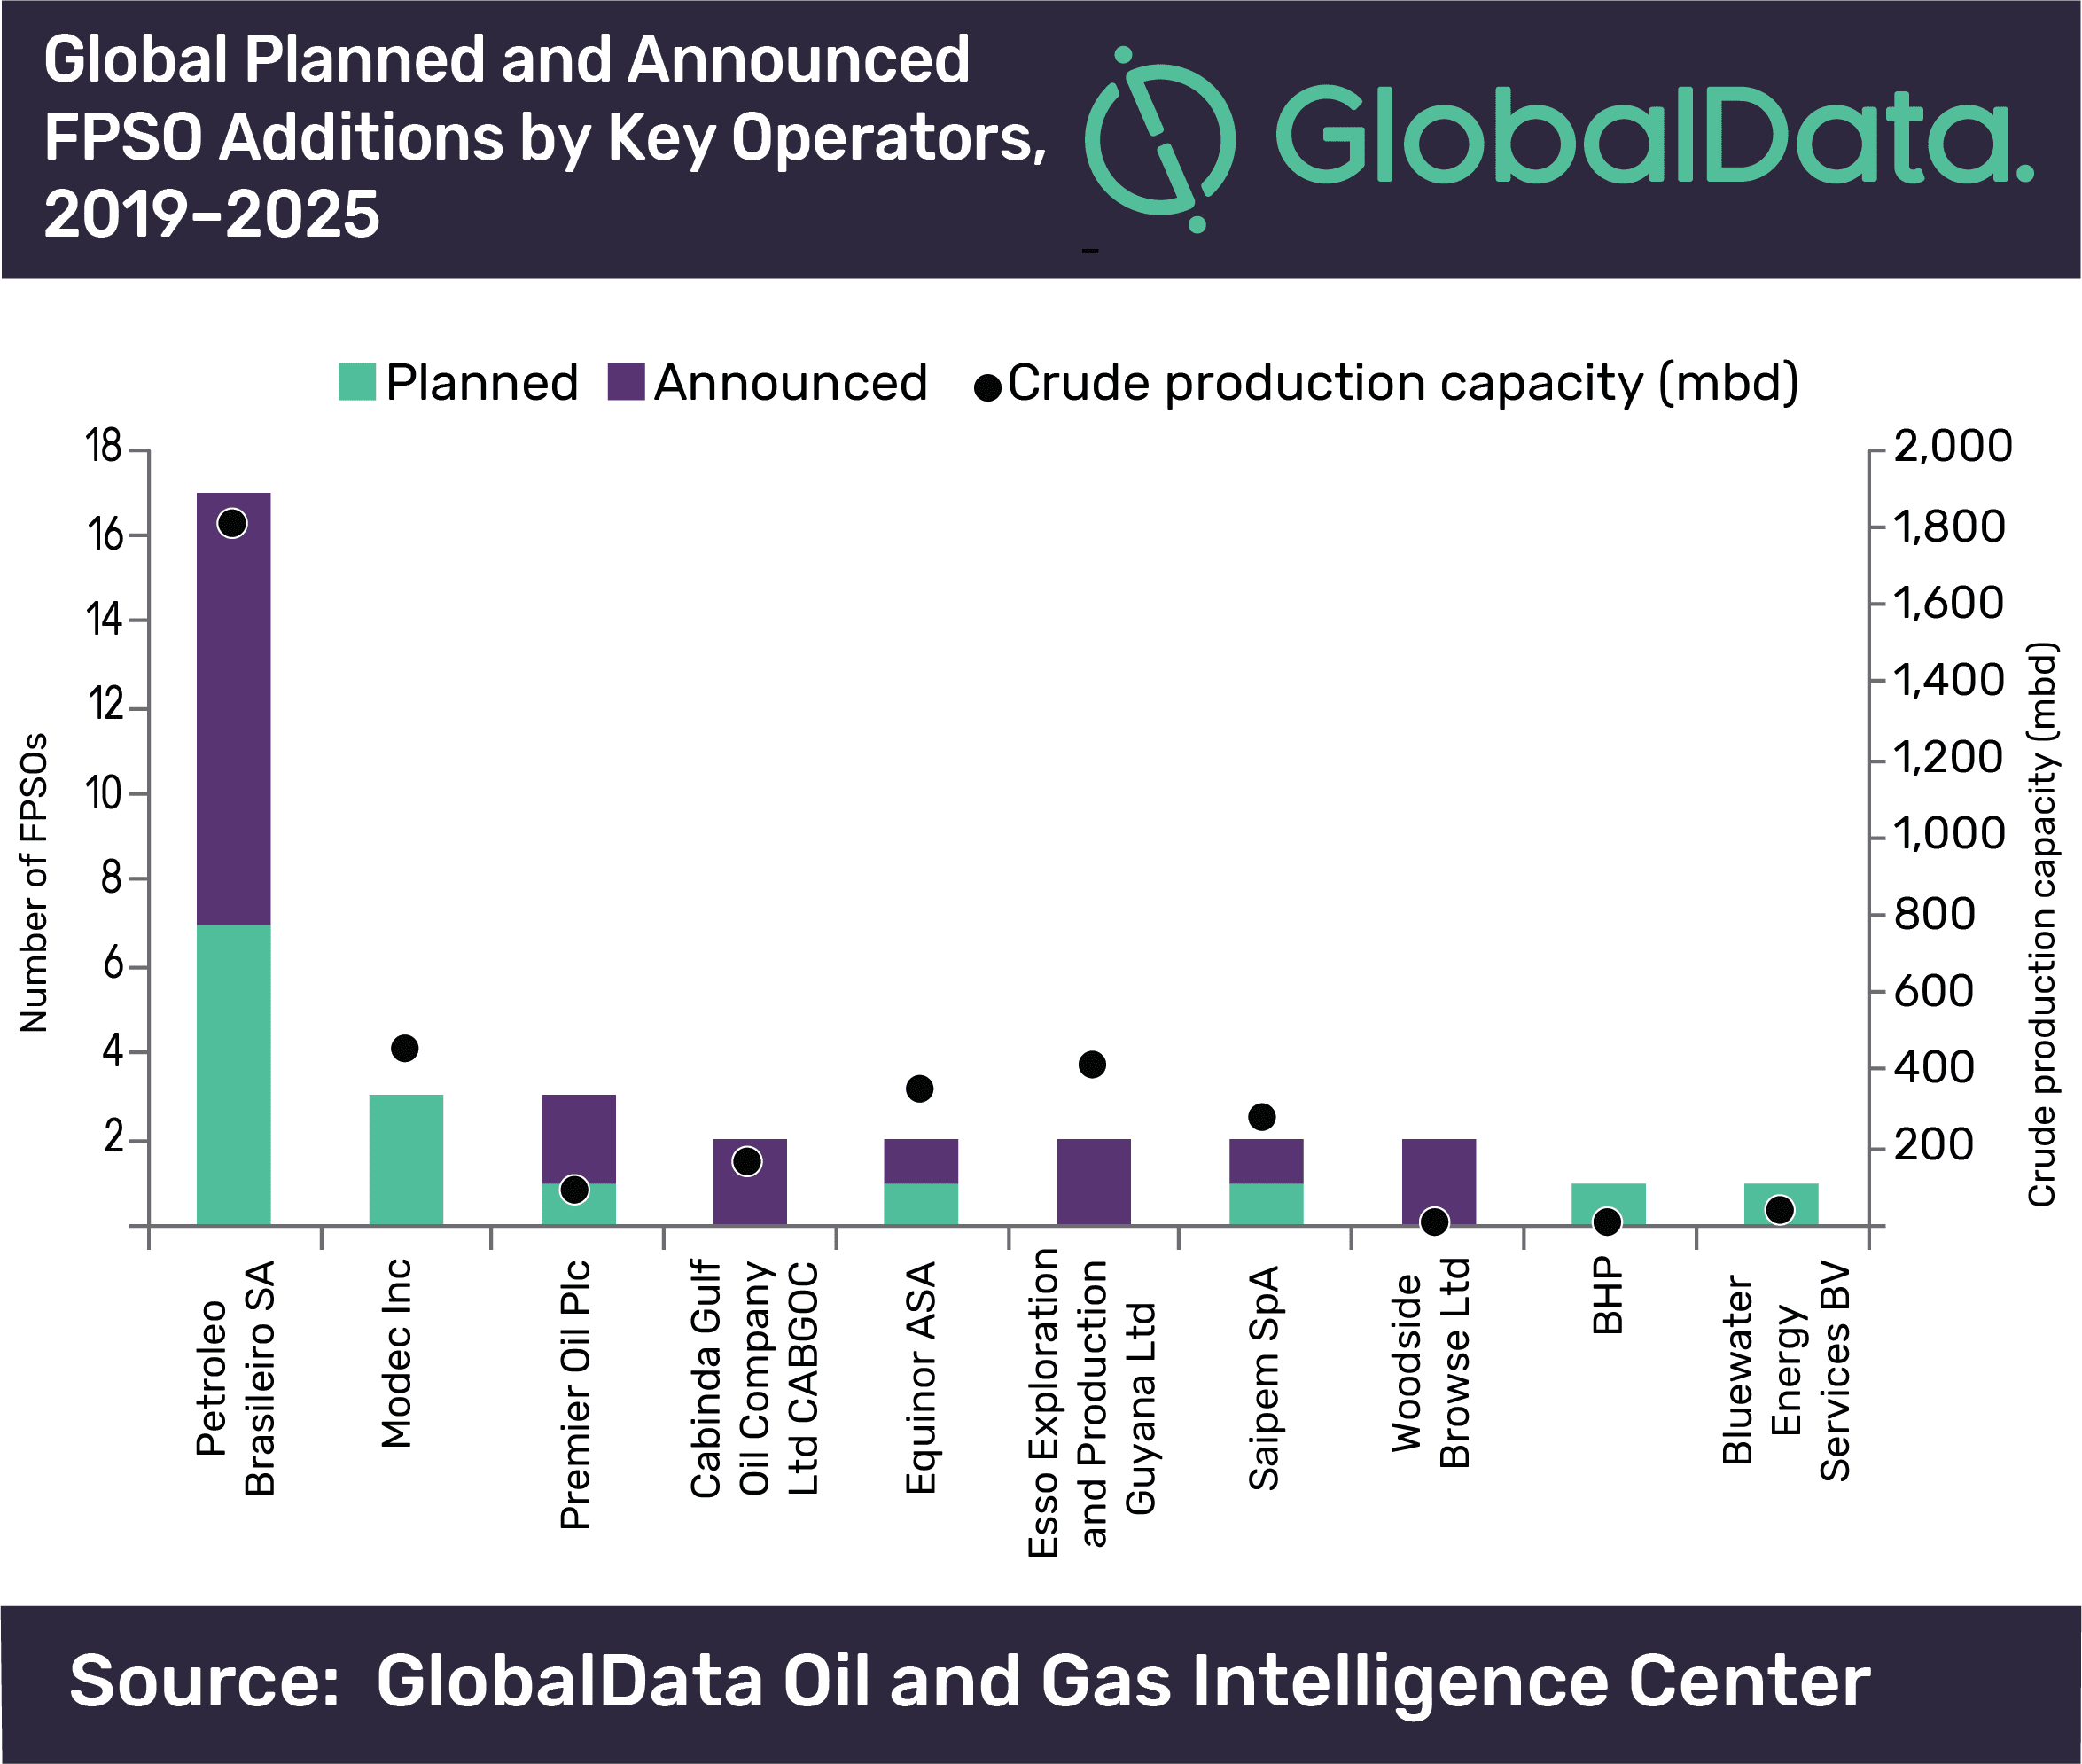 Petrobras Continues to Lead Global Deployment of Planned and Announced FPSOs